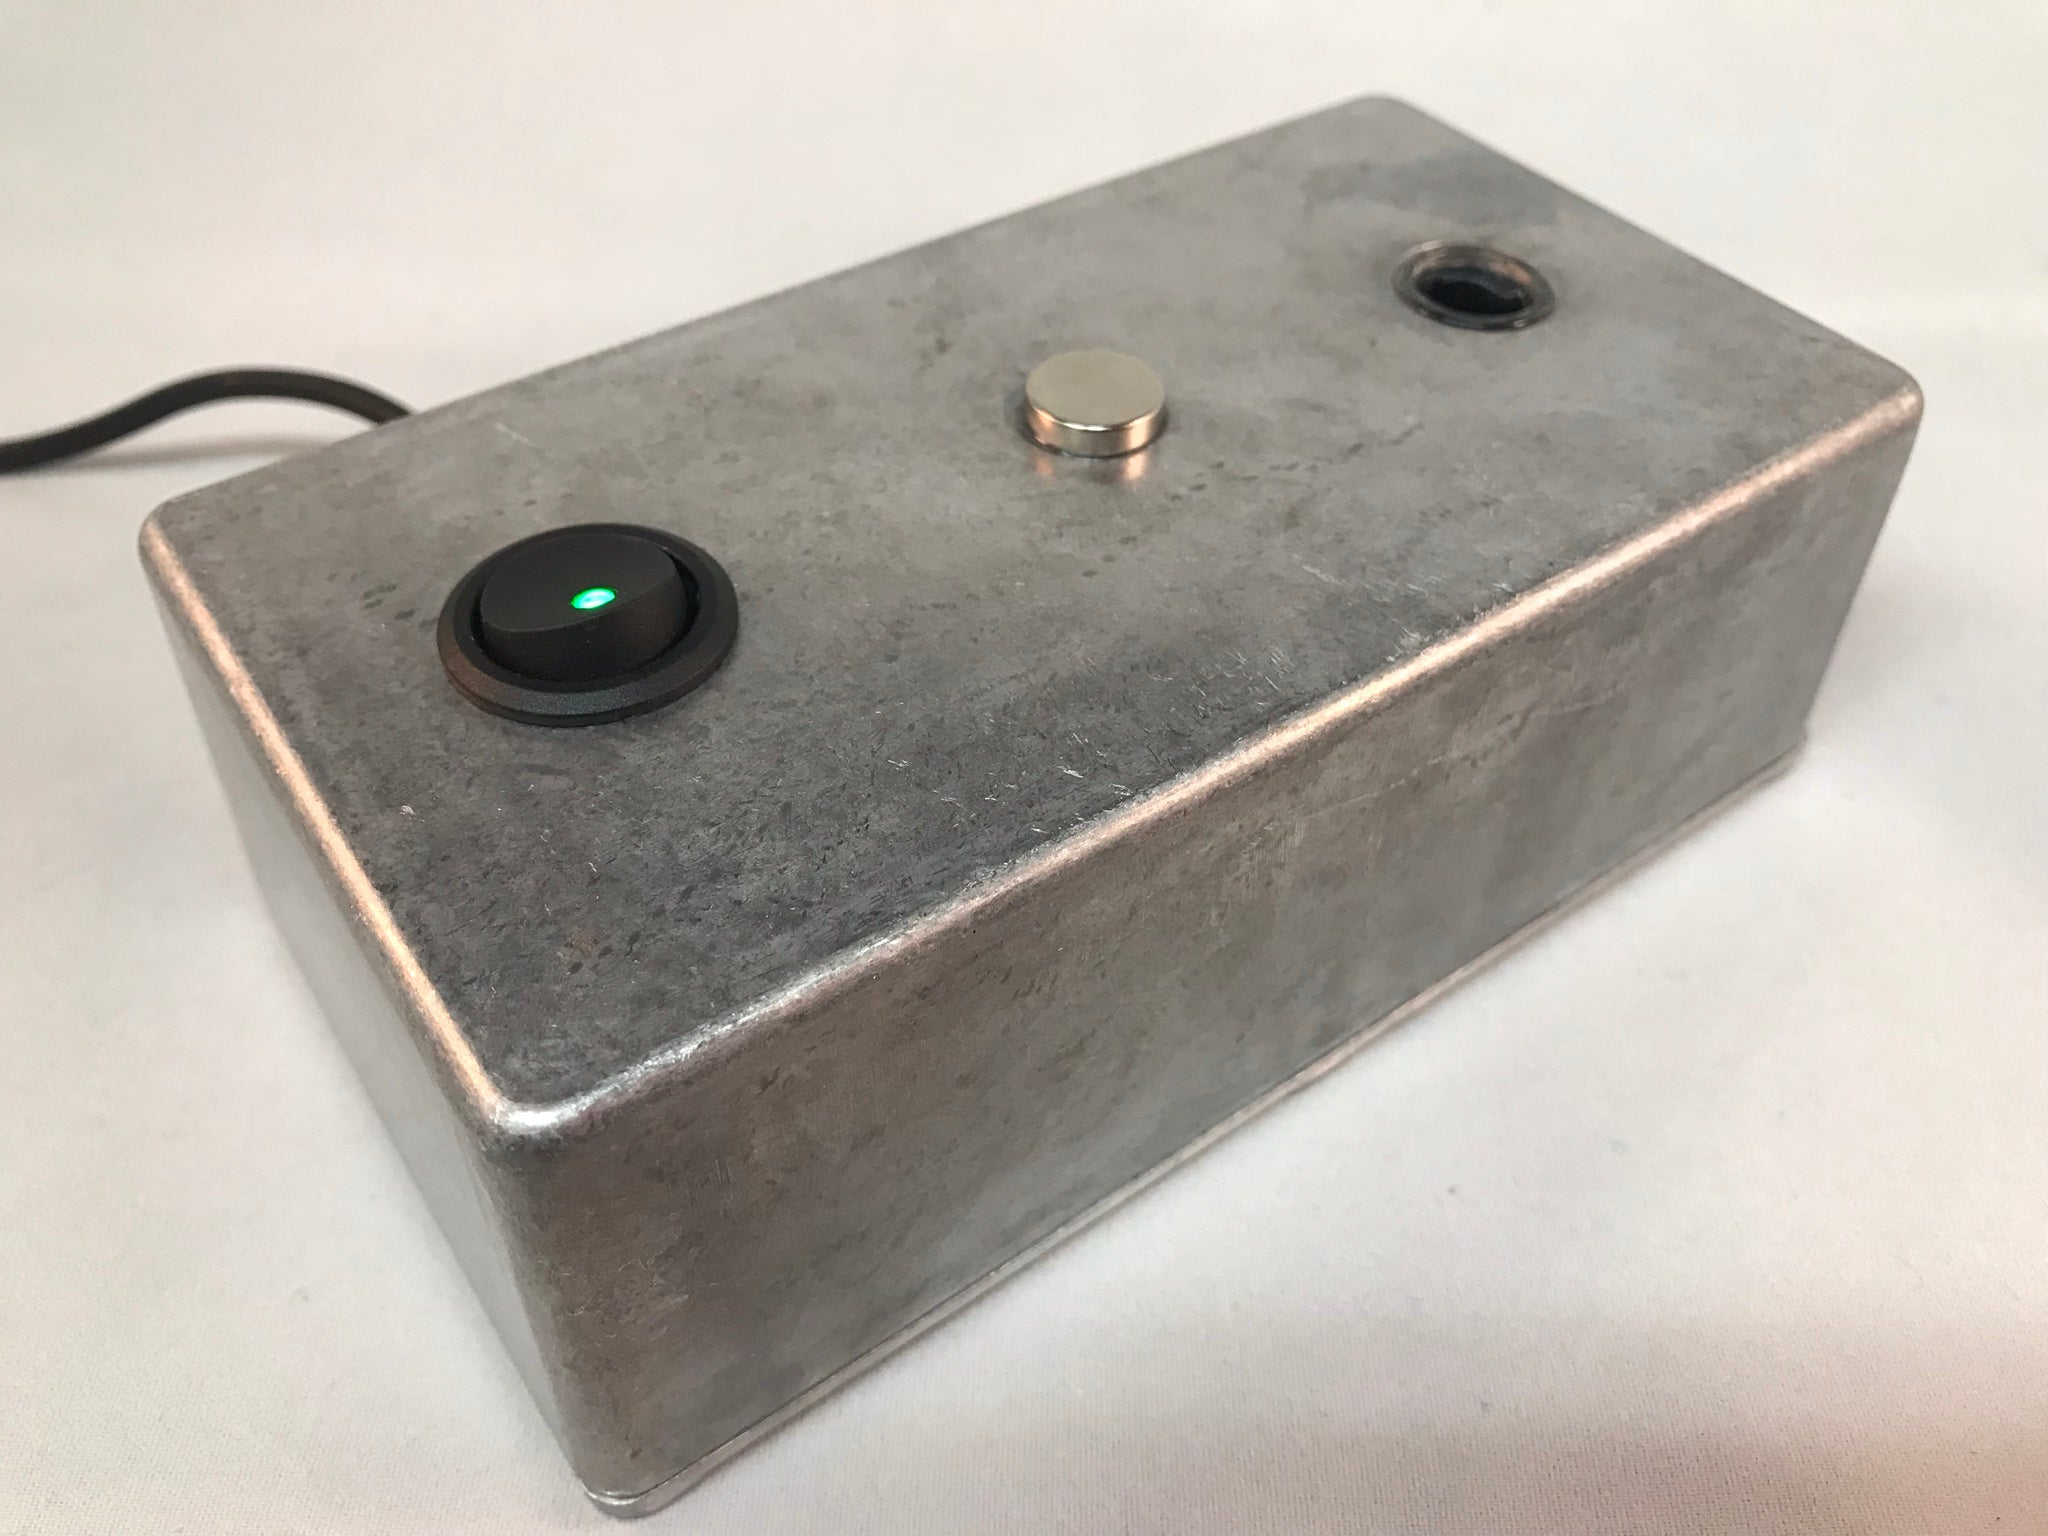 Metal Induction Heater - Green LED